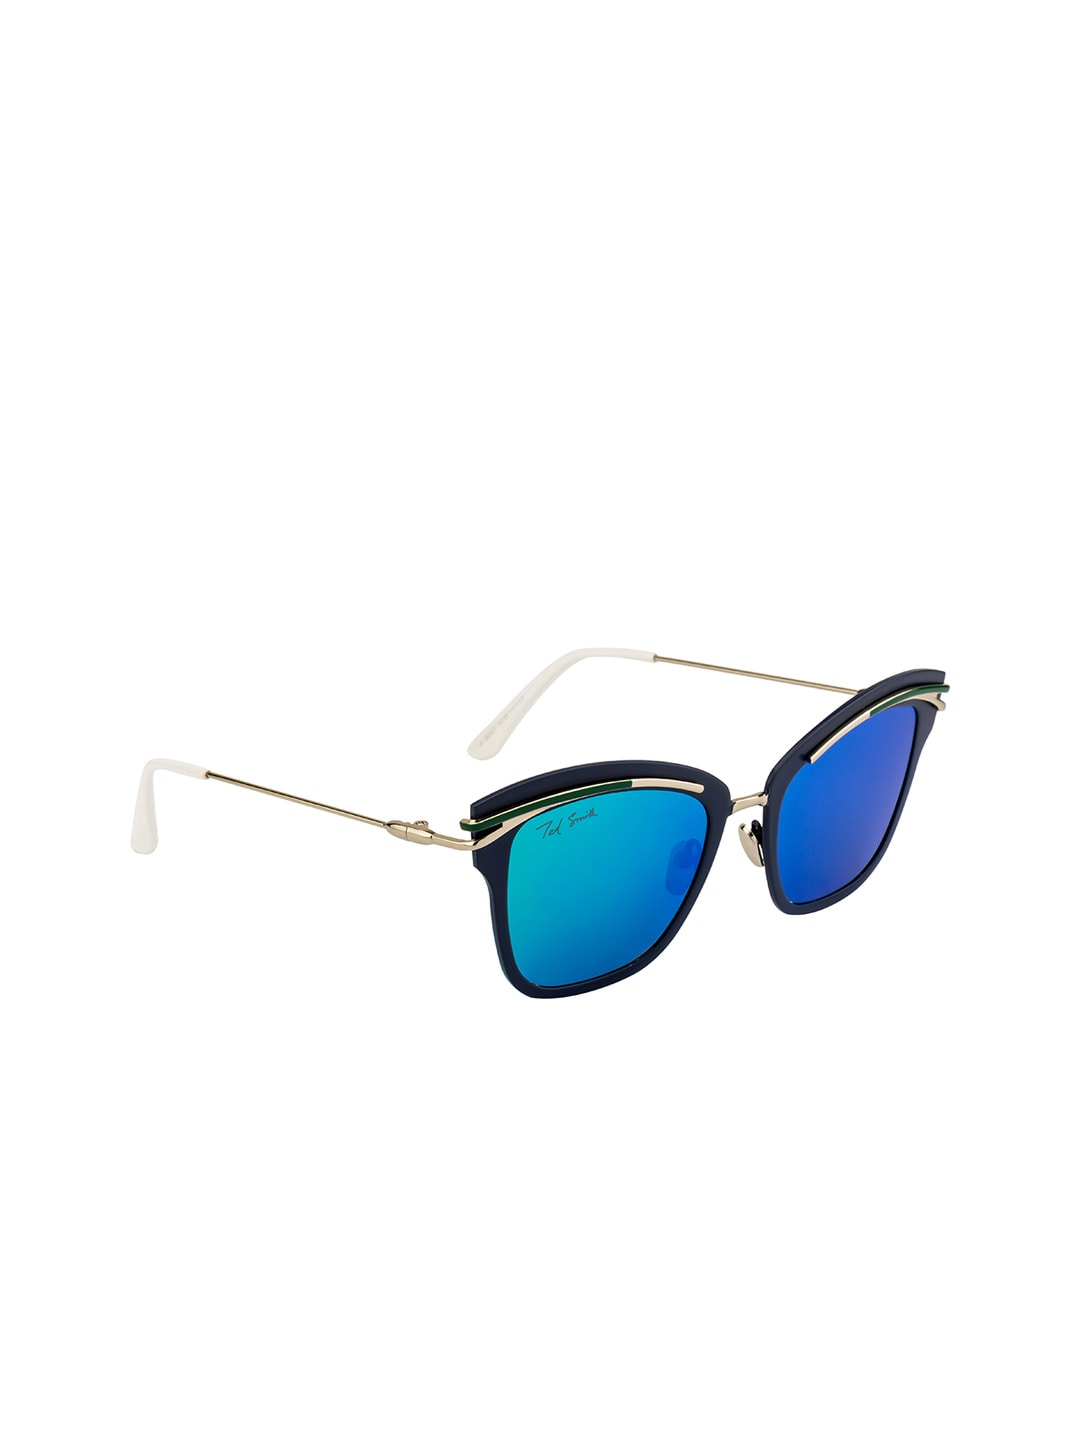 117740a82a45a Blue Sunglasses - Buy Blue Colour Sunglass Online in India